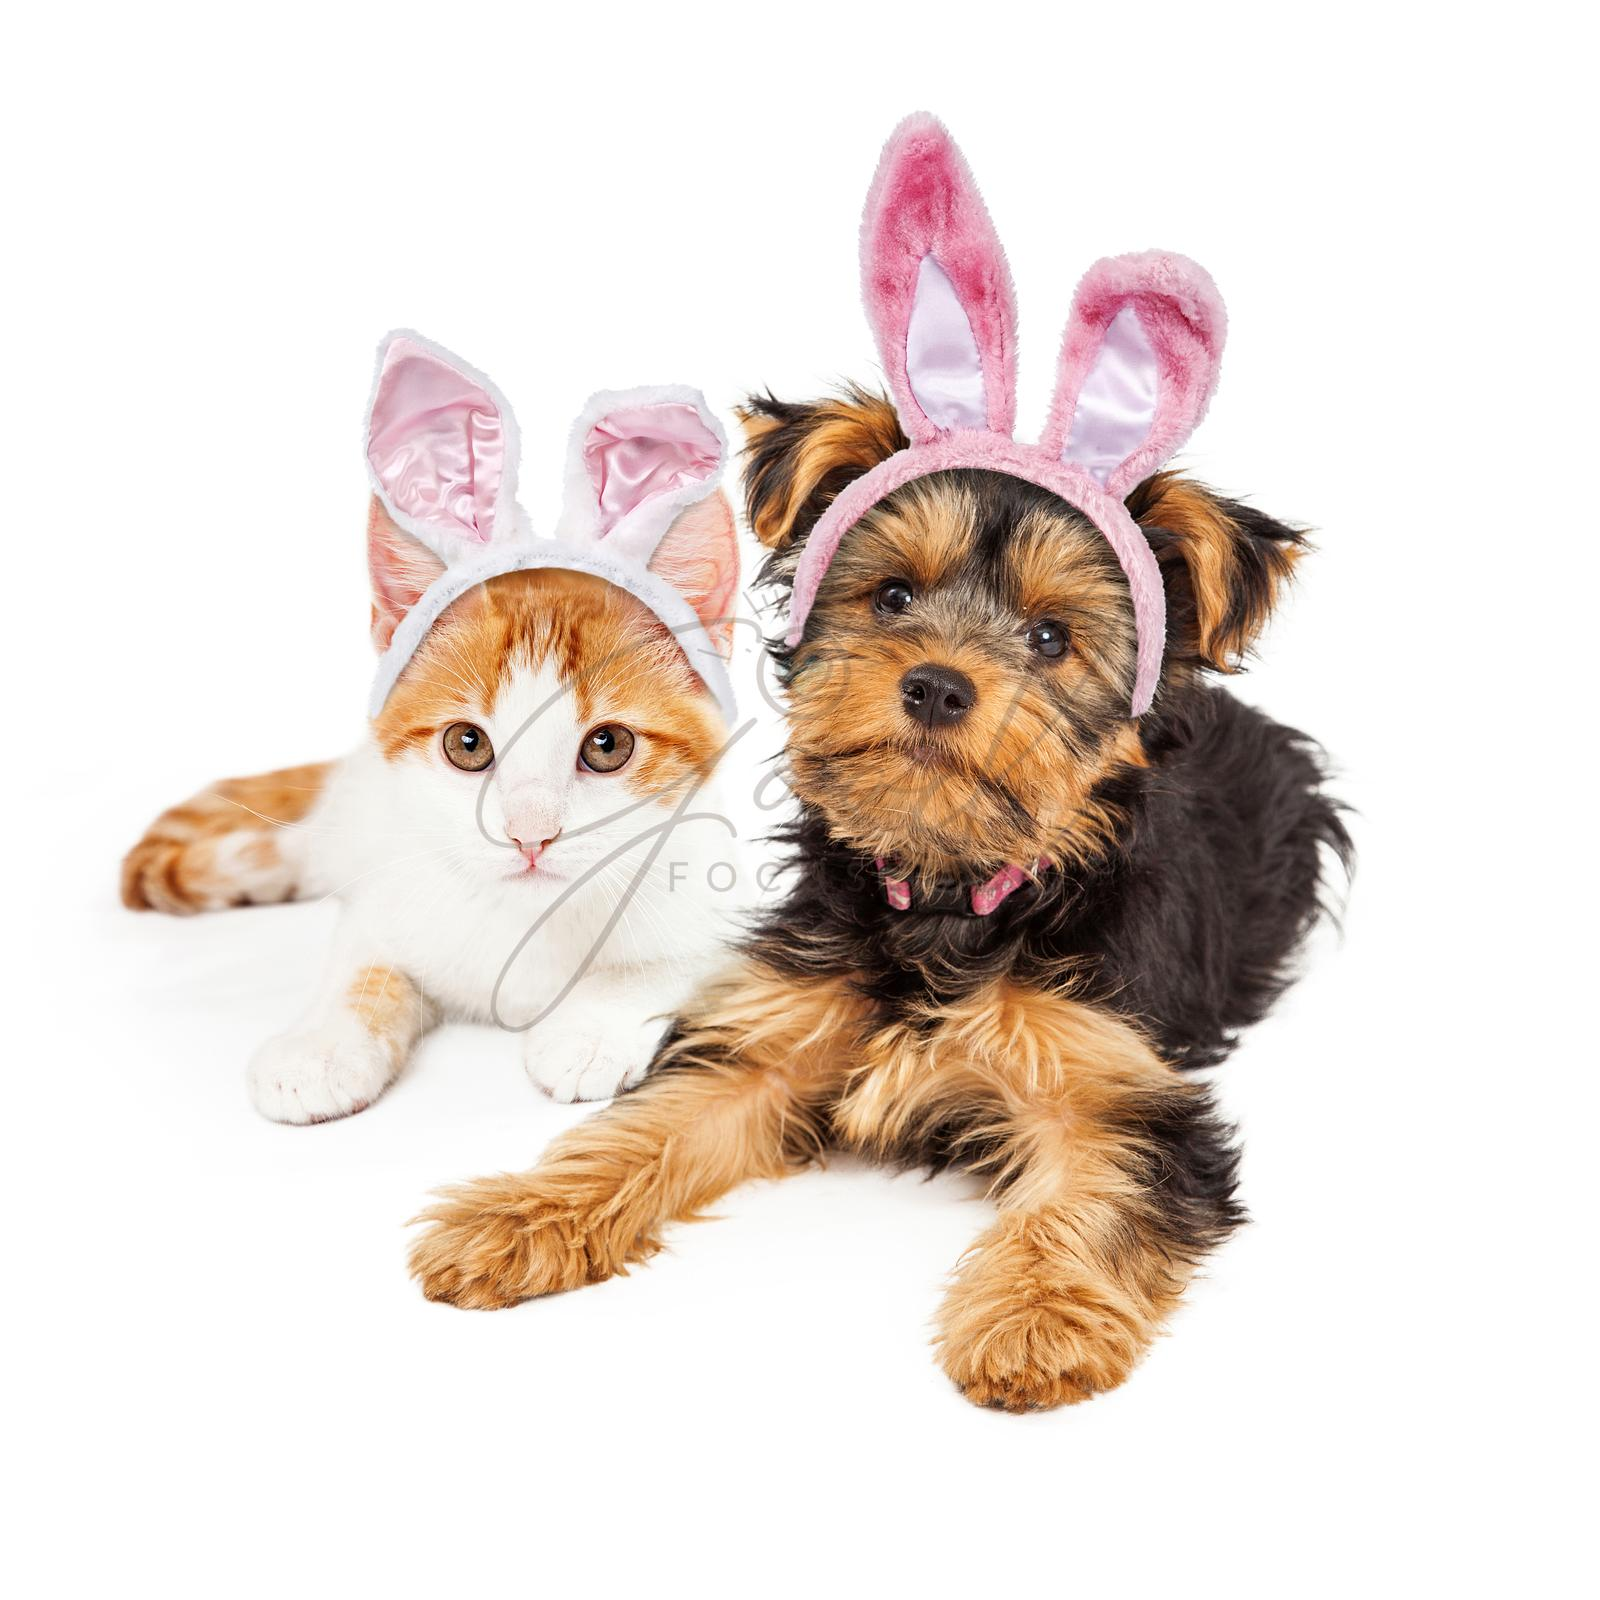 Easter Bunny Yorkshire Puppy and Kitten